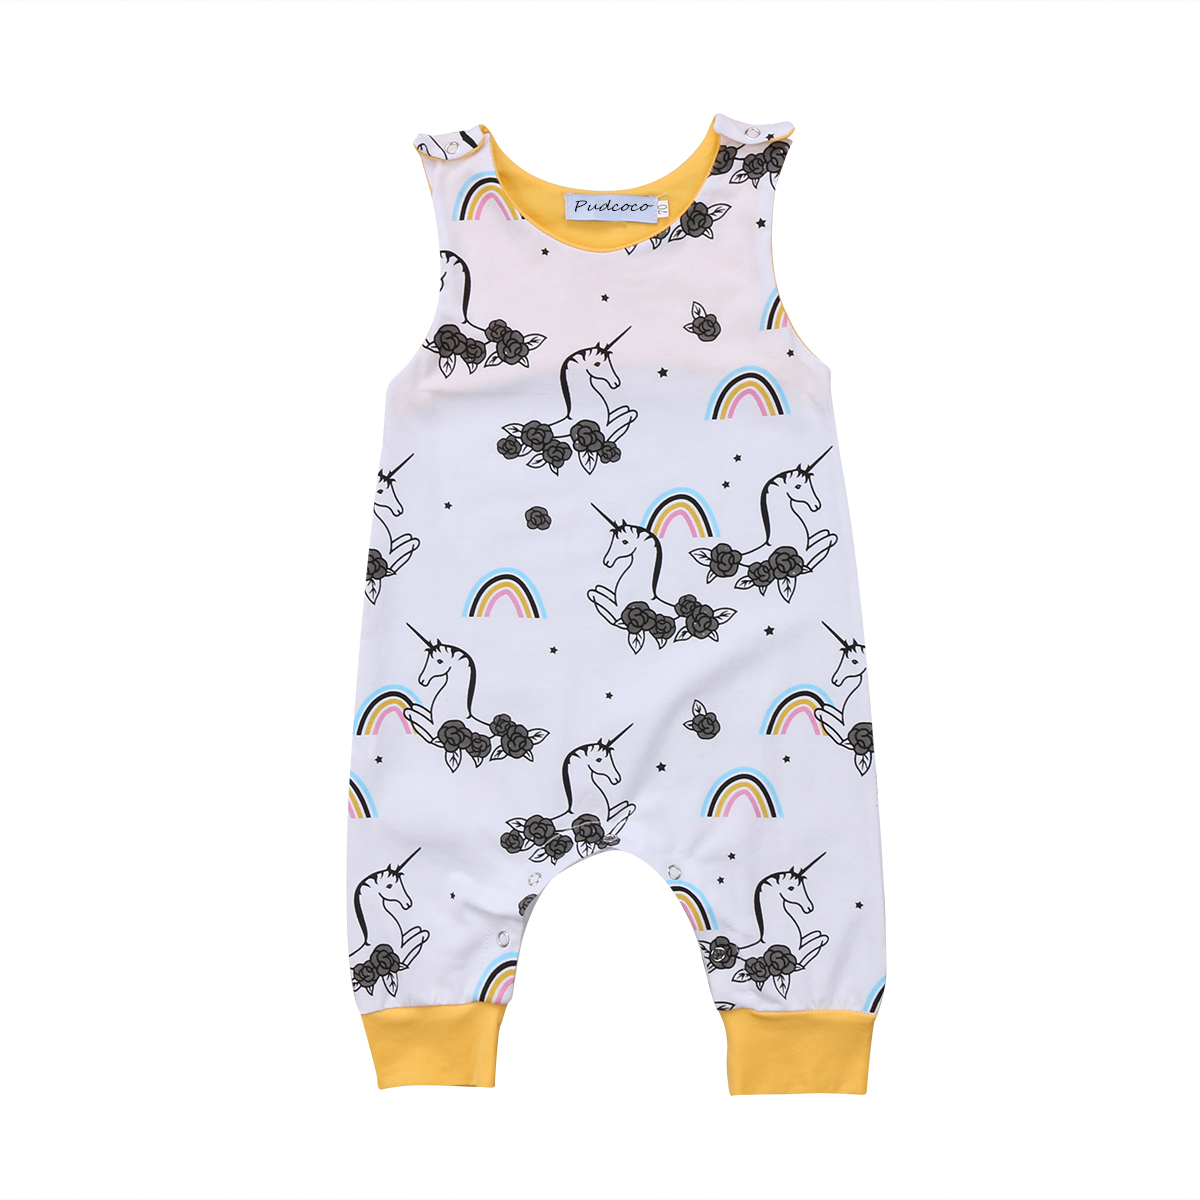 Pudcoco Infant Baby Boys Girls Unicorn Romper Cotton Outfits Floral Jumpsuit Clothes pudcoco newborn infant baby girls clothes short sleeve floral romper headband summer cute cotton one piece clothes